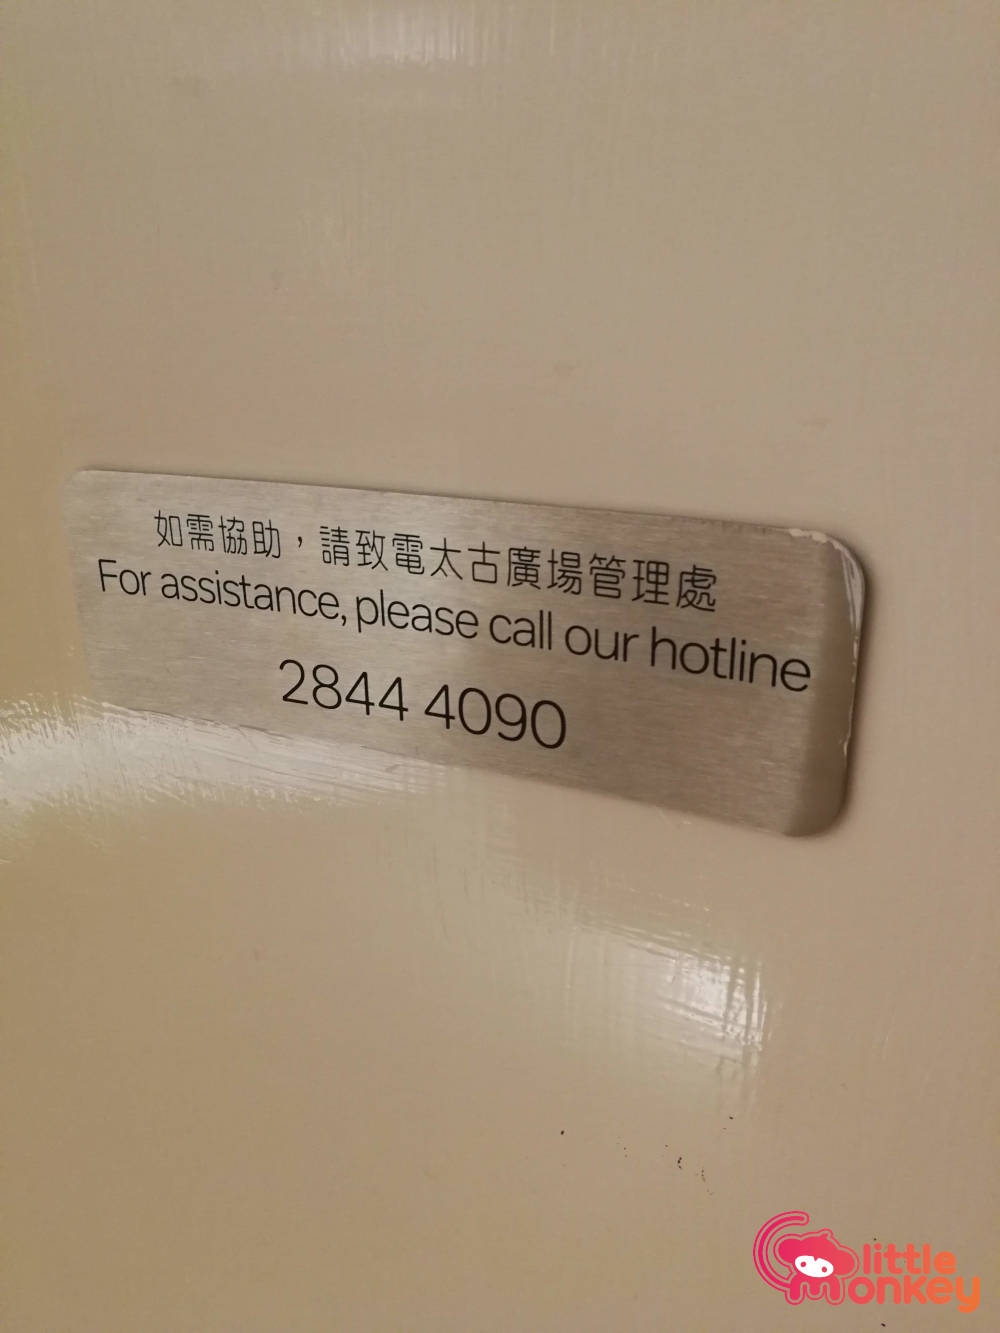 Nursery room's hotline number in Pacific Place